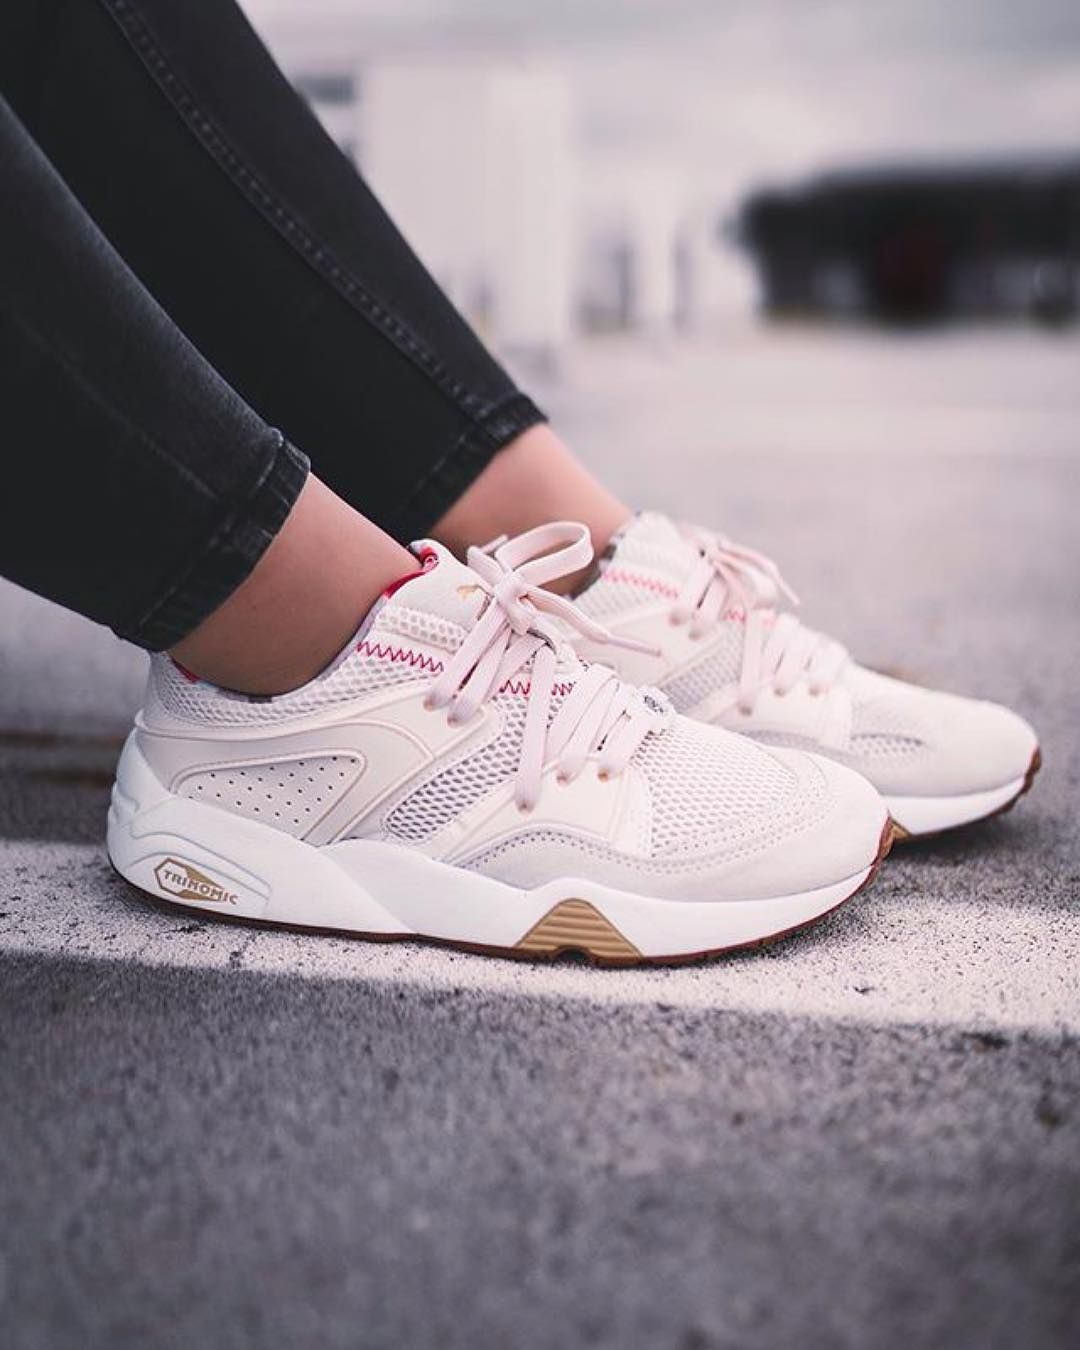 big sale cc401 26103 Sneakers femme - Puma Blaze Of Glory x Careaux (©objctve)